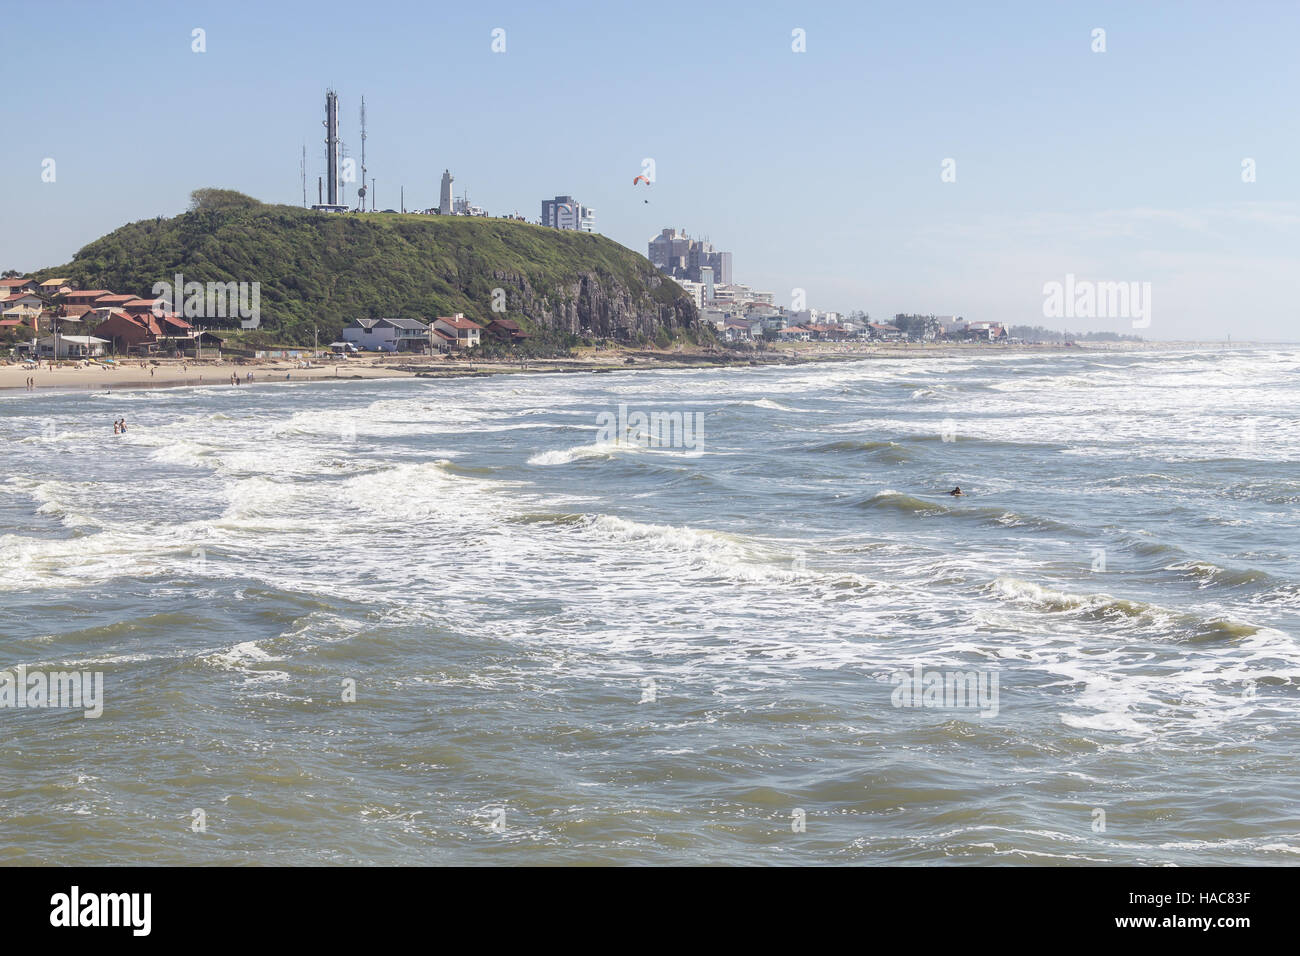 Cal and Grande beachs in a sunny and windy day - Stock Image